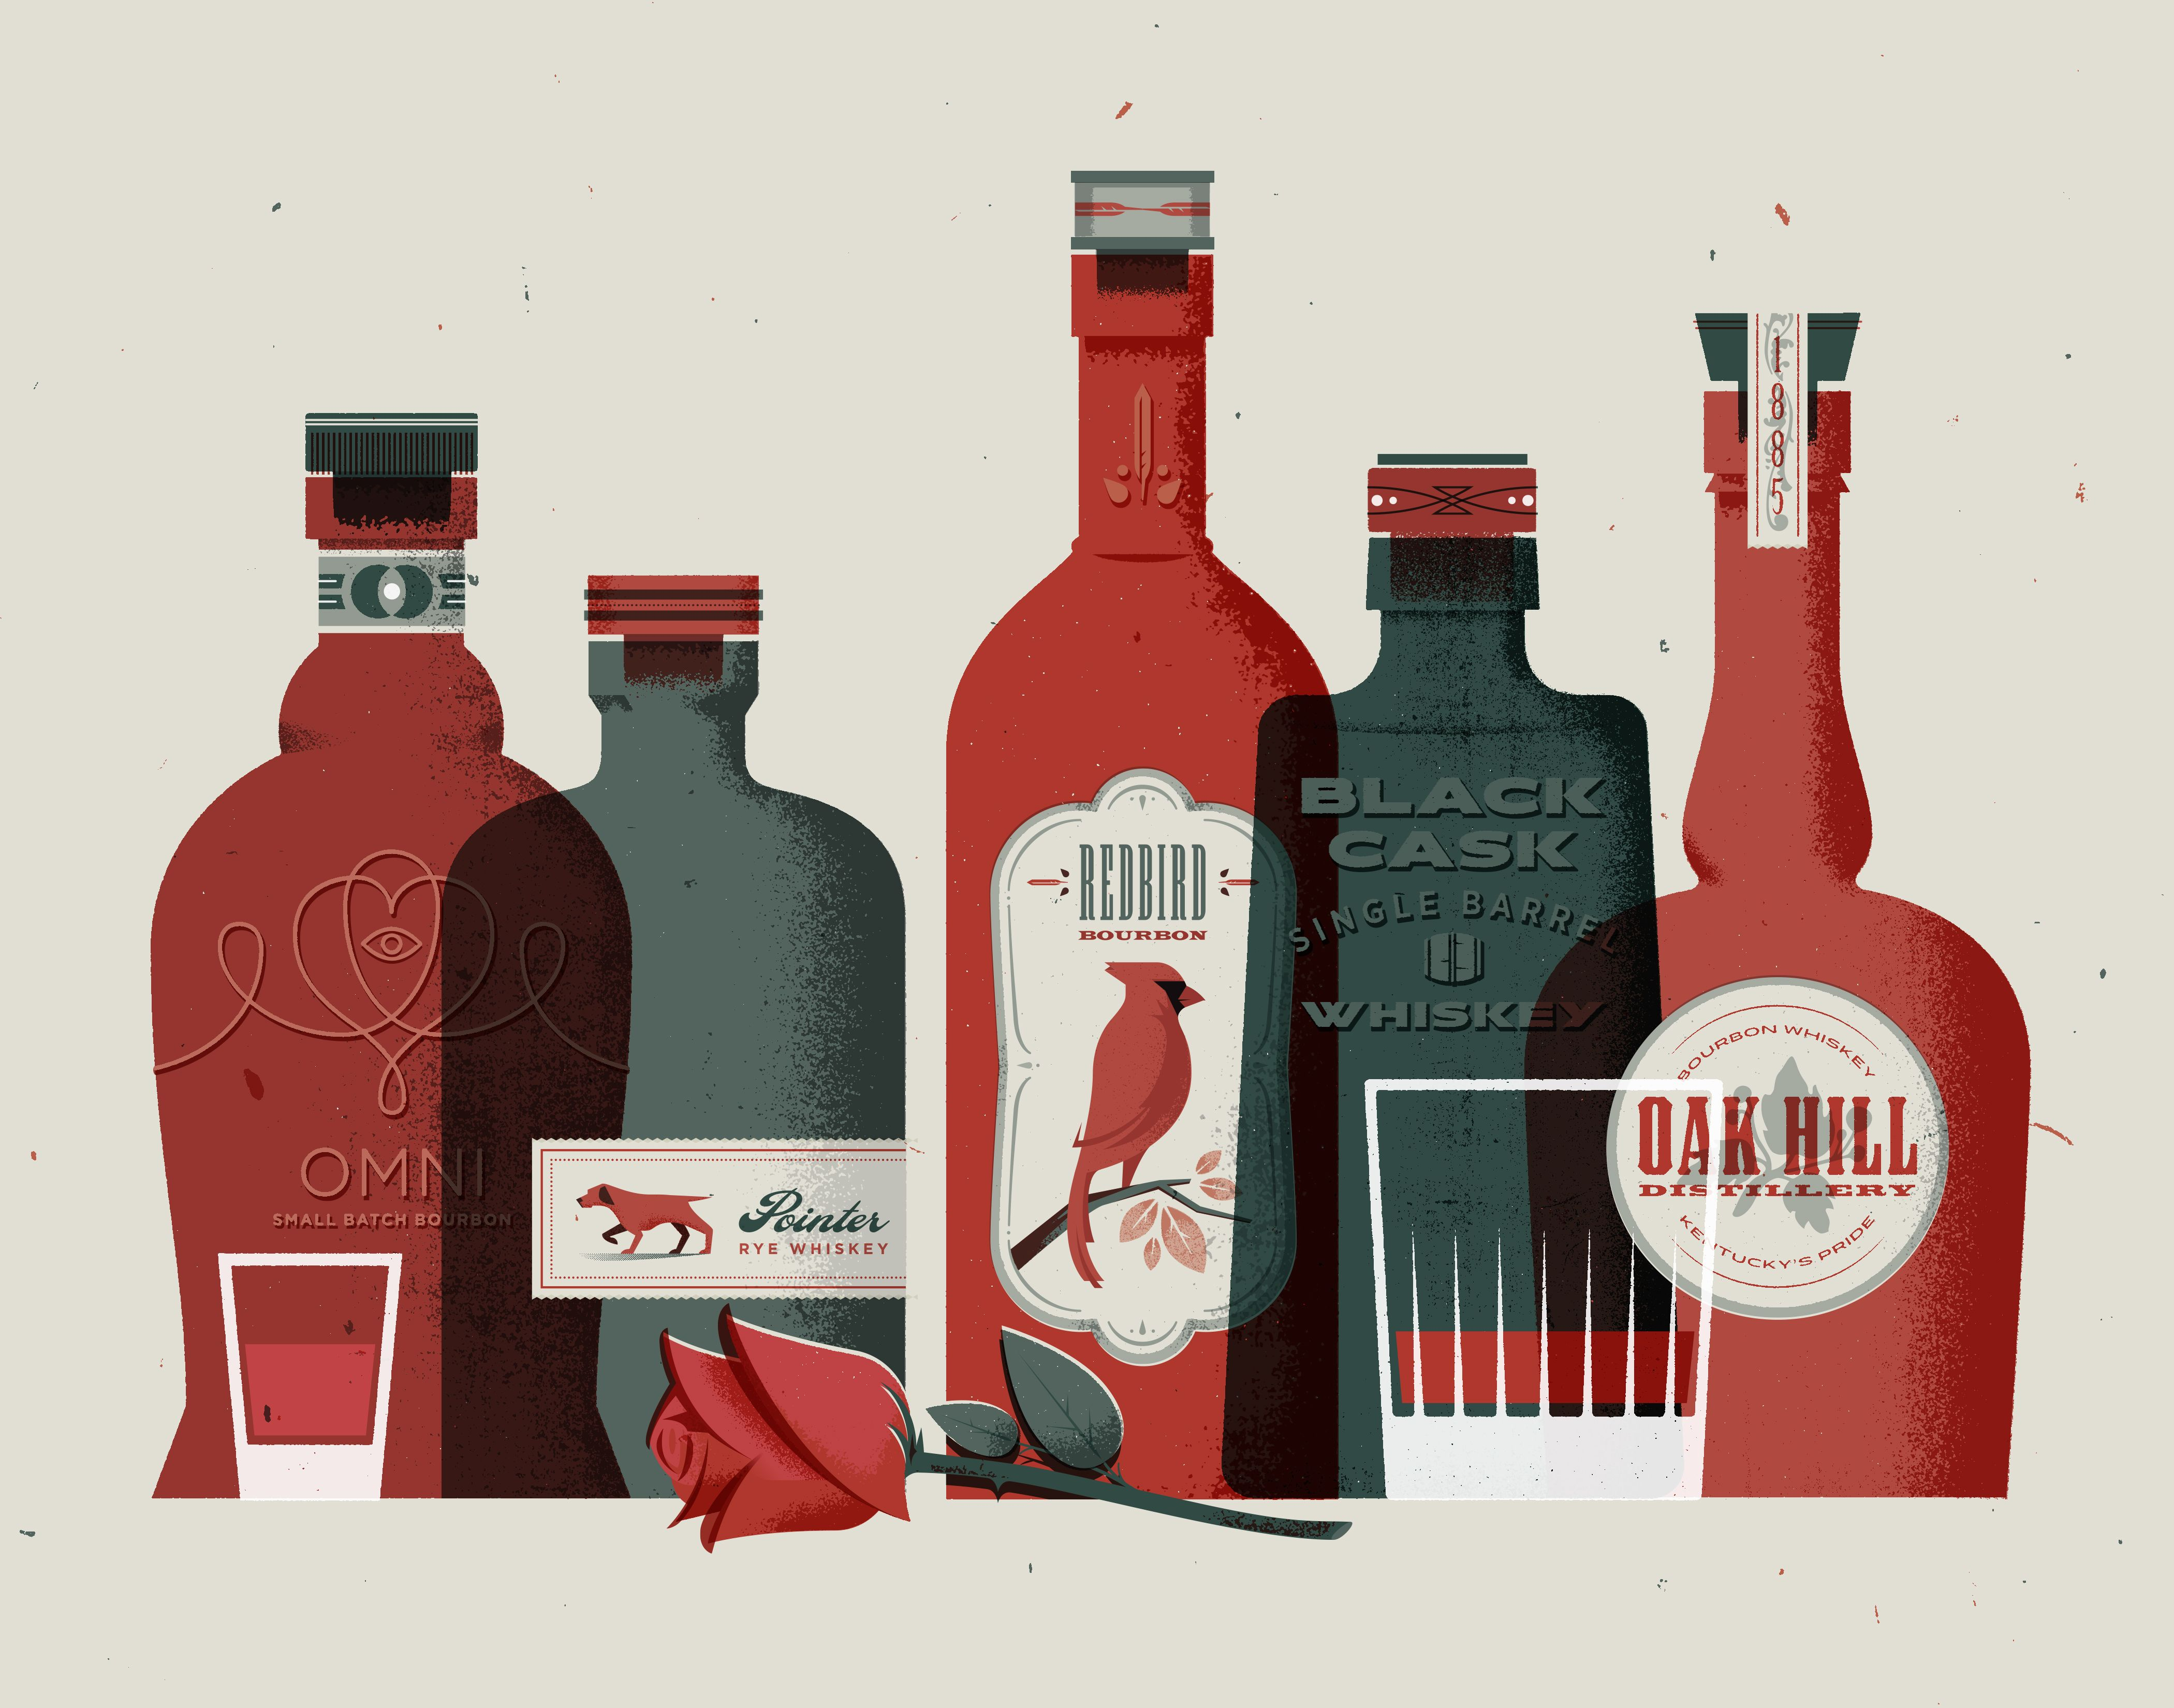 Check Out This Behance Project Liquor Https Www Behance Net Gallery 14295681 Liquor Bottle Liquor Liquor Bottles